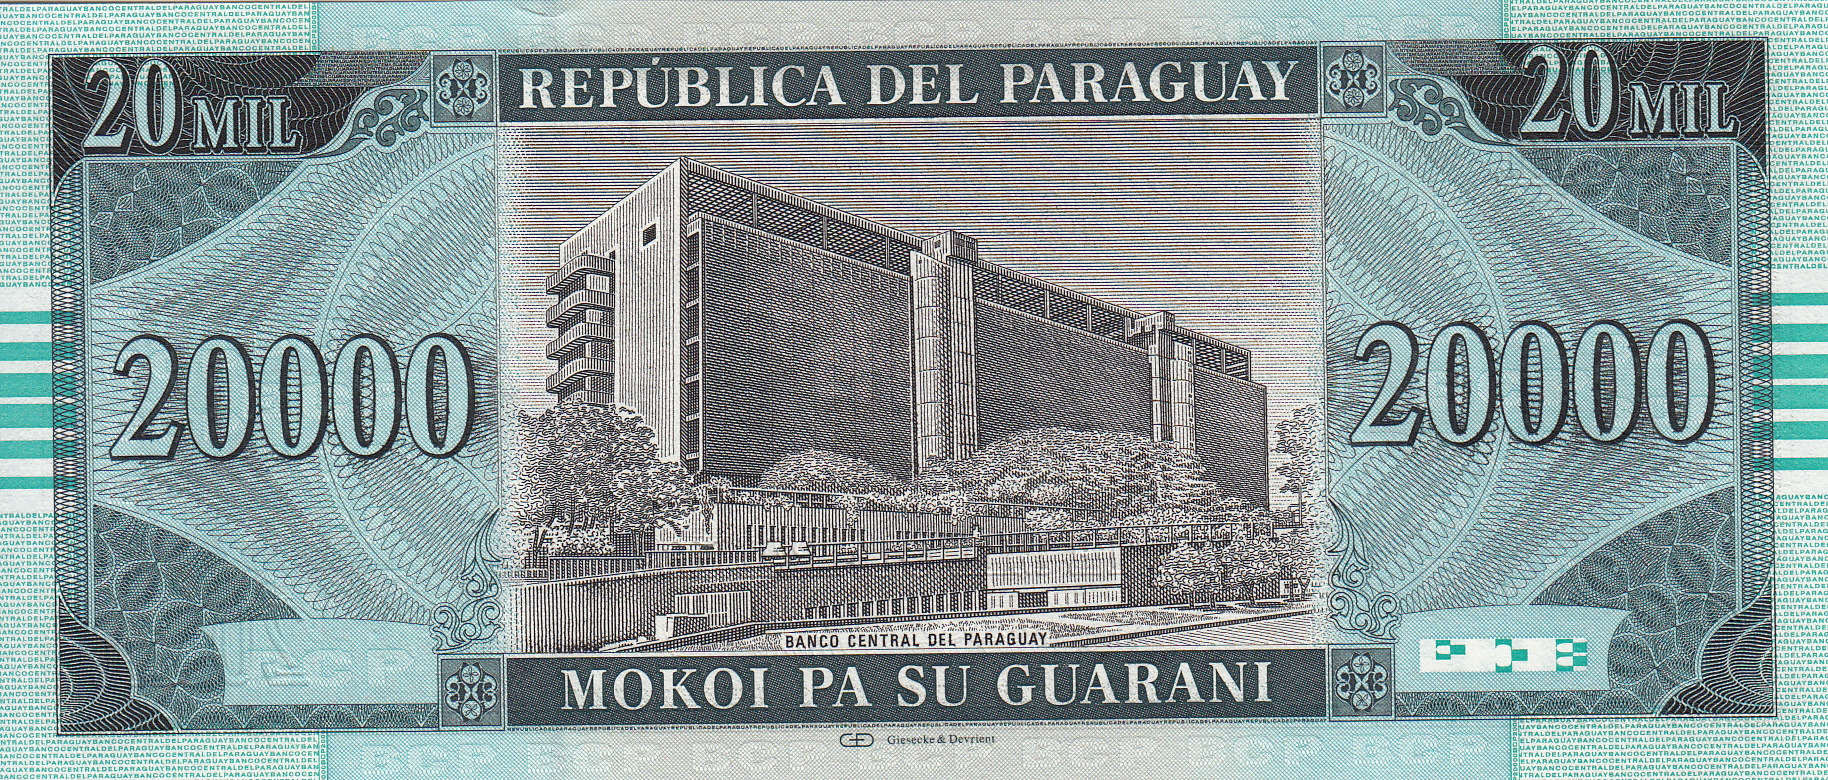 economy of paraguay Latest news and information from the world bank and its development work in paraguayaccess paraguay's economy facts, statistics, project information, development research from experts and latest news.